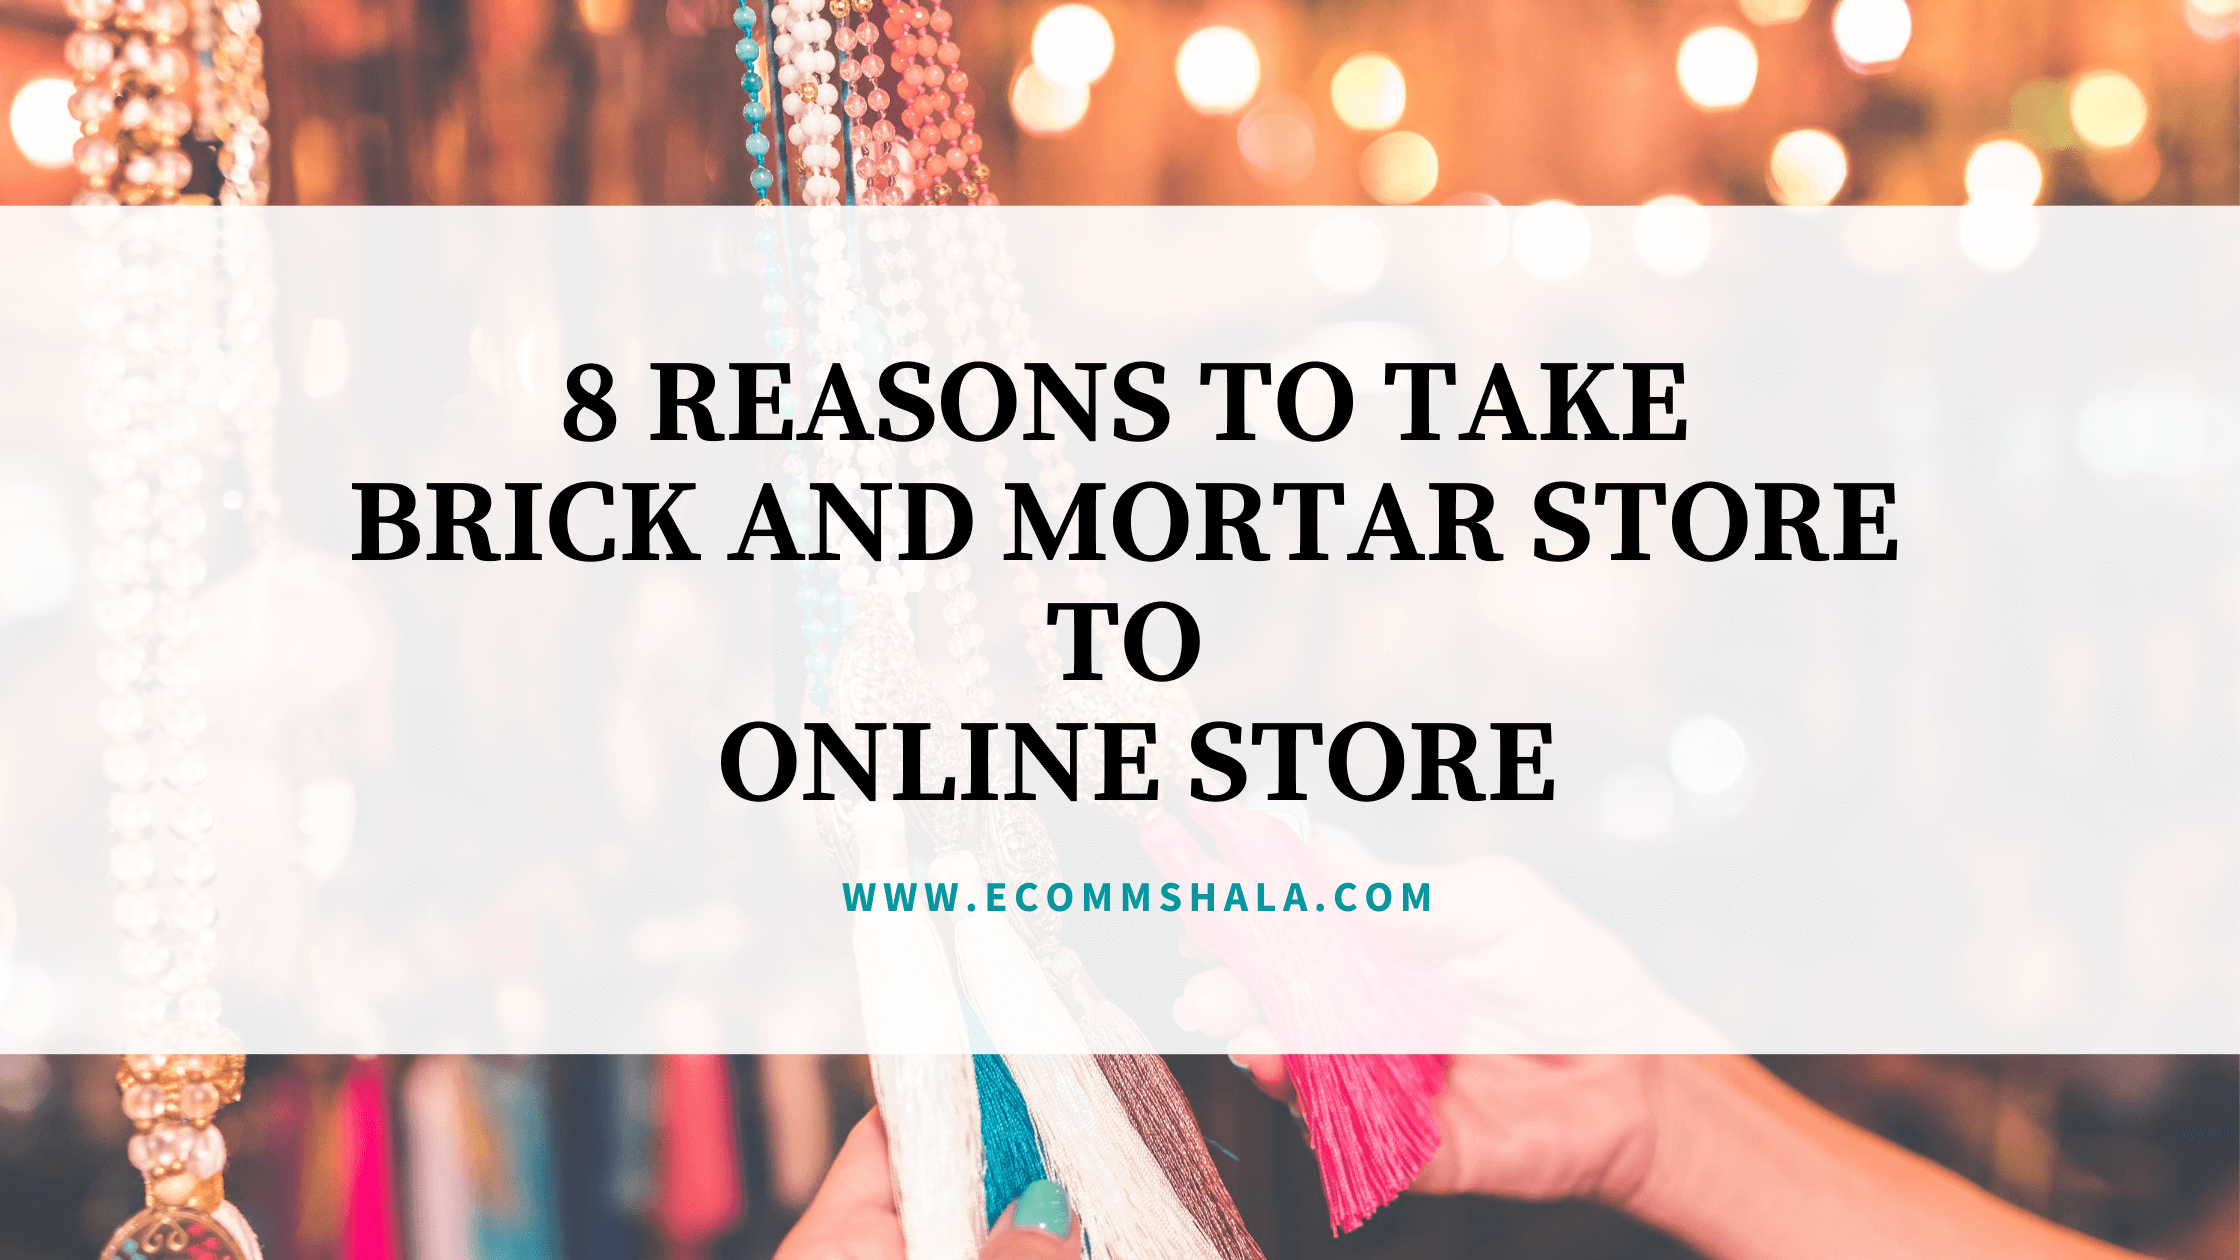 Reasons to Take Brick and Mortar Store to Online Store